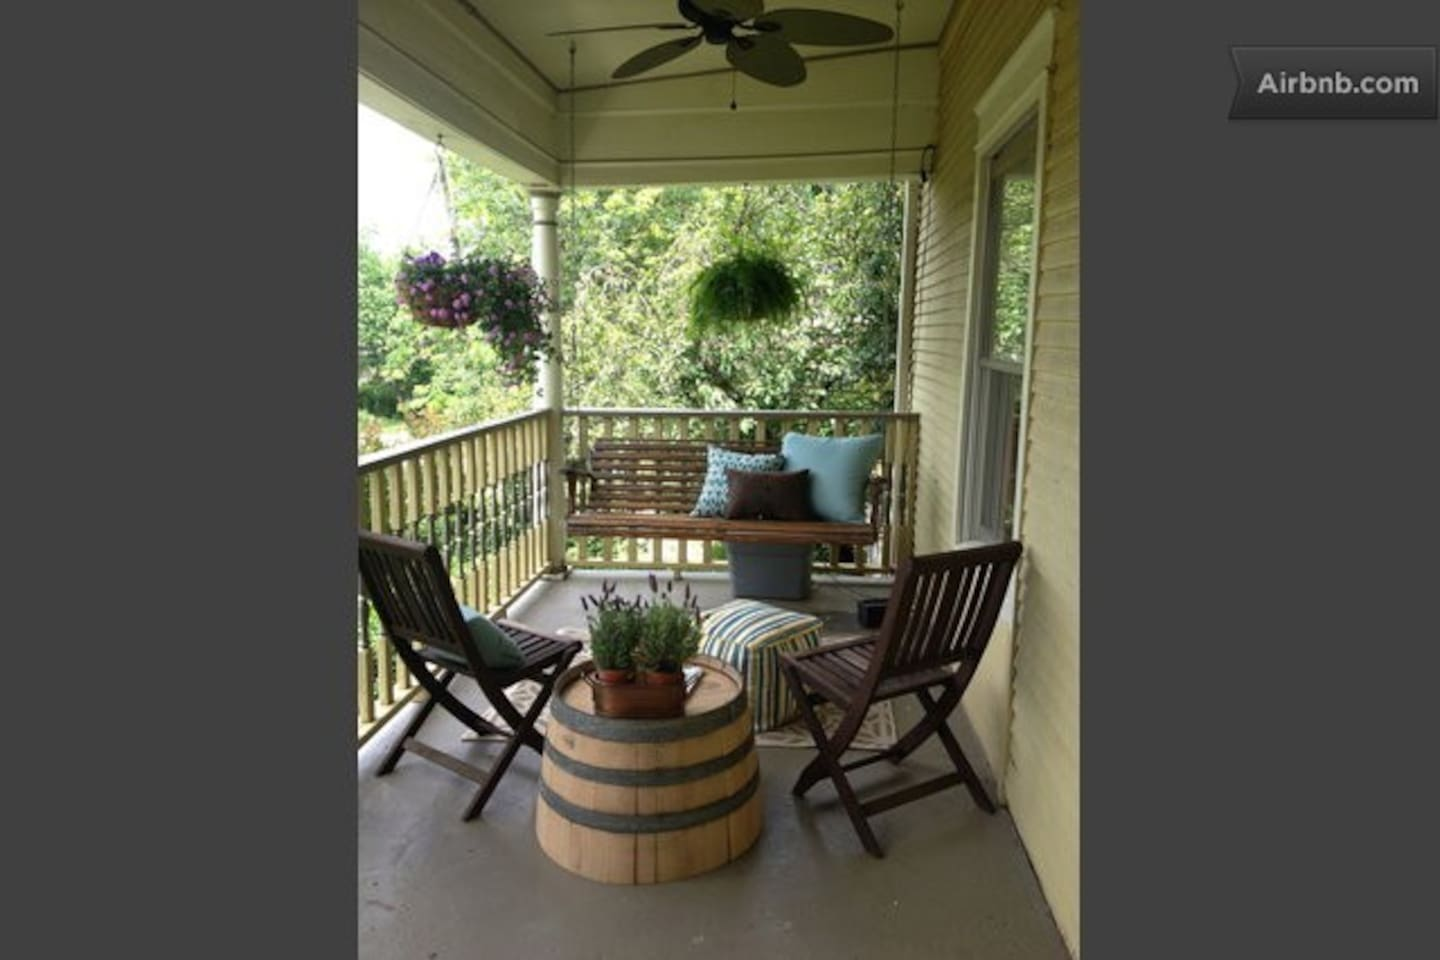 The sitting area on the from porch